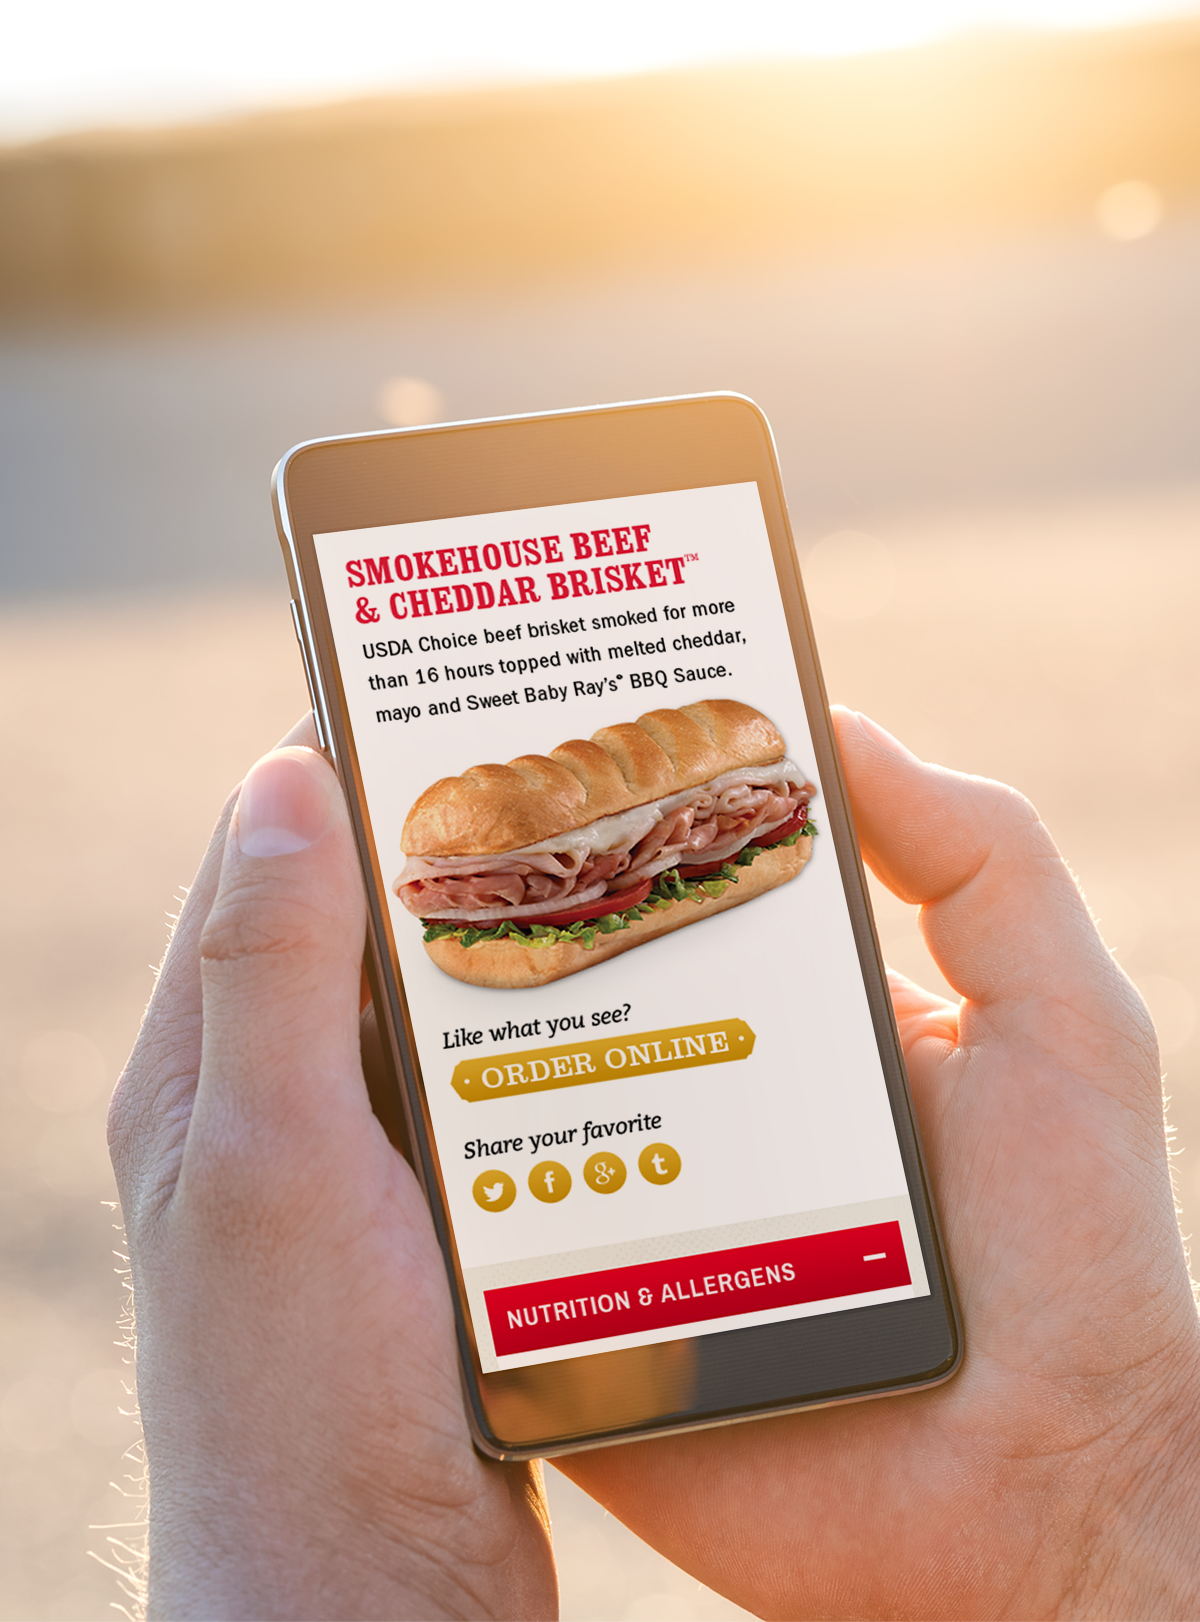 By 2015, online ordering began overtaking phone ordering. Firehouse saw this transition on the horizon and tapped us to create a seamless ordering experience that could be accessed from anywhere.